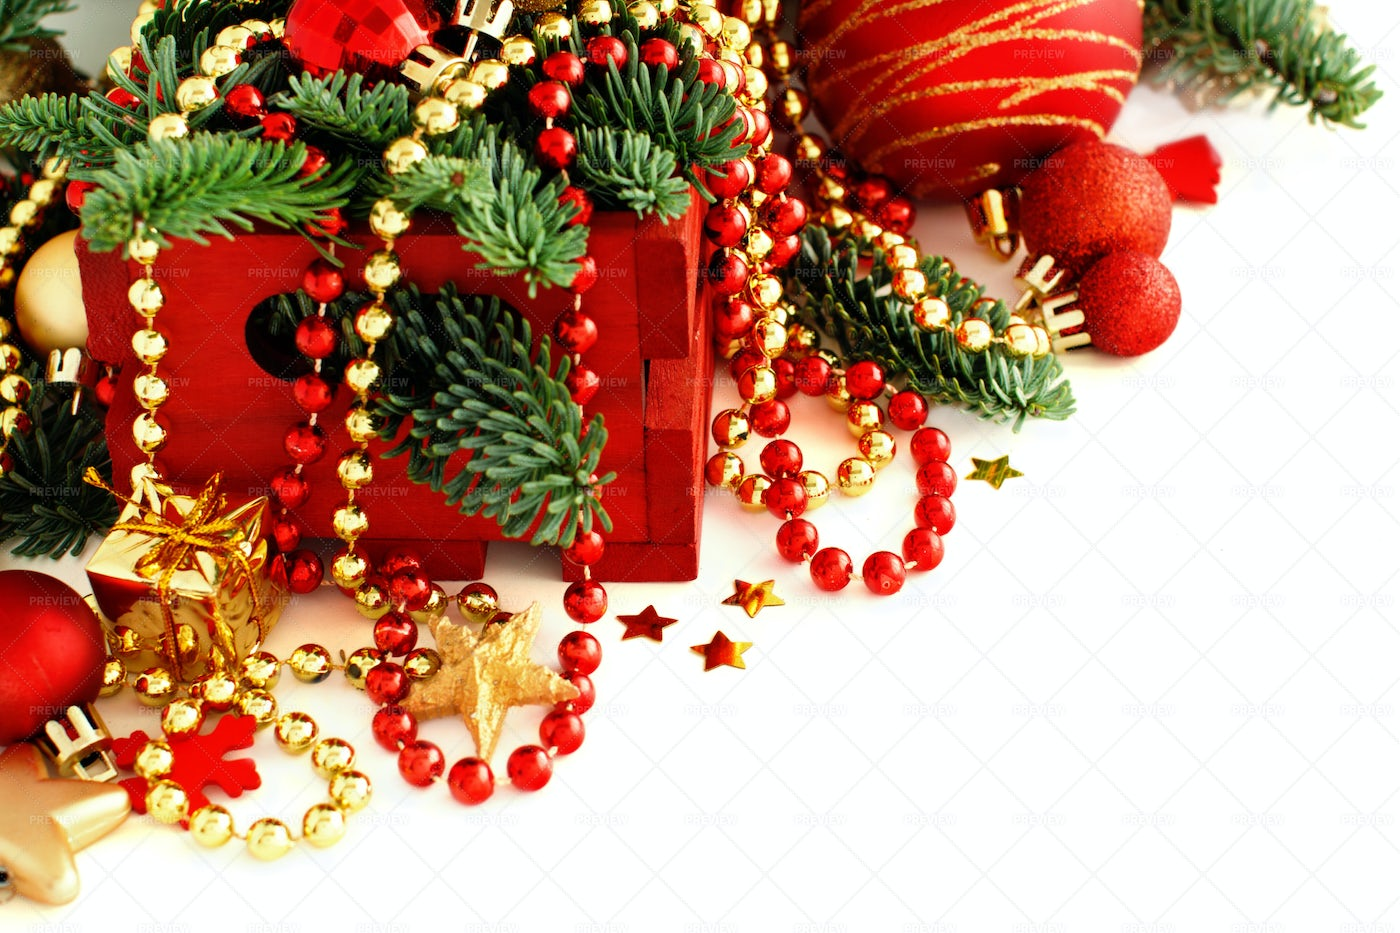 Red And Golden Christmas Decorations: Stock Photos